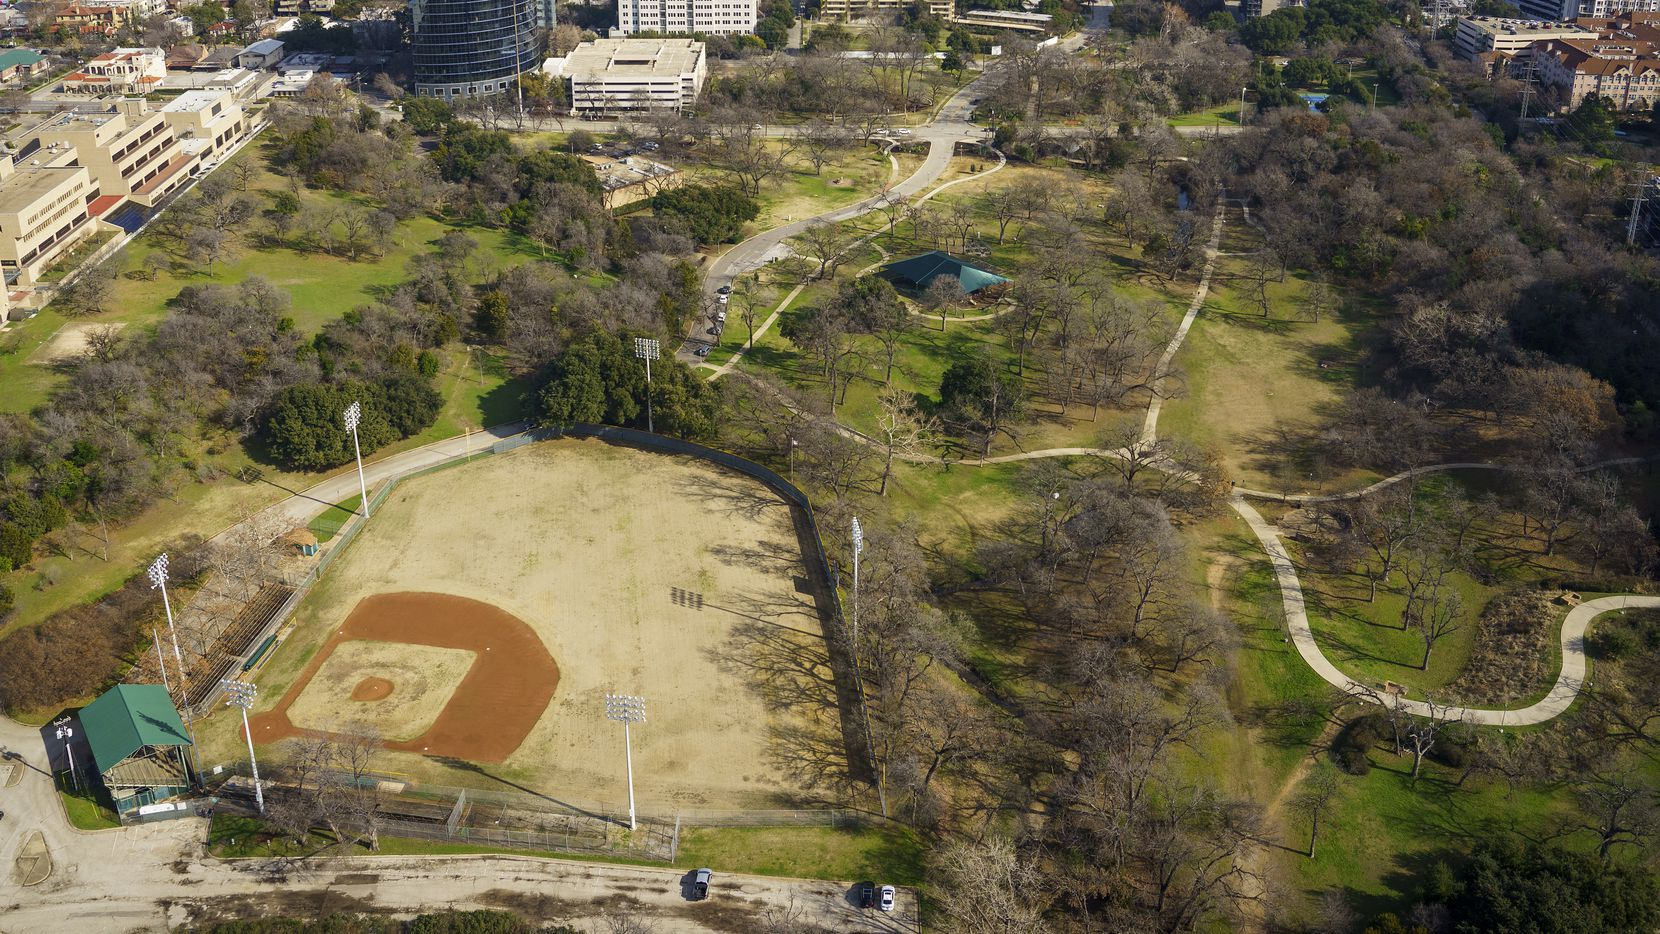 Aerial view of Reverchon Park and its historic baseball field, on Sunday, Jan. 12, 2020, in Dallas. This view looks towards the neighborhood east of the park, where some neighbors are opposed to the ballfield redevelopment plans.